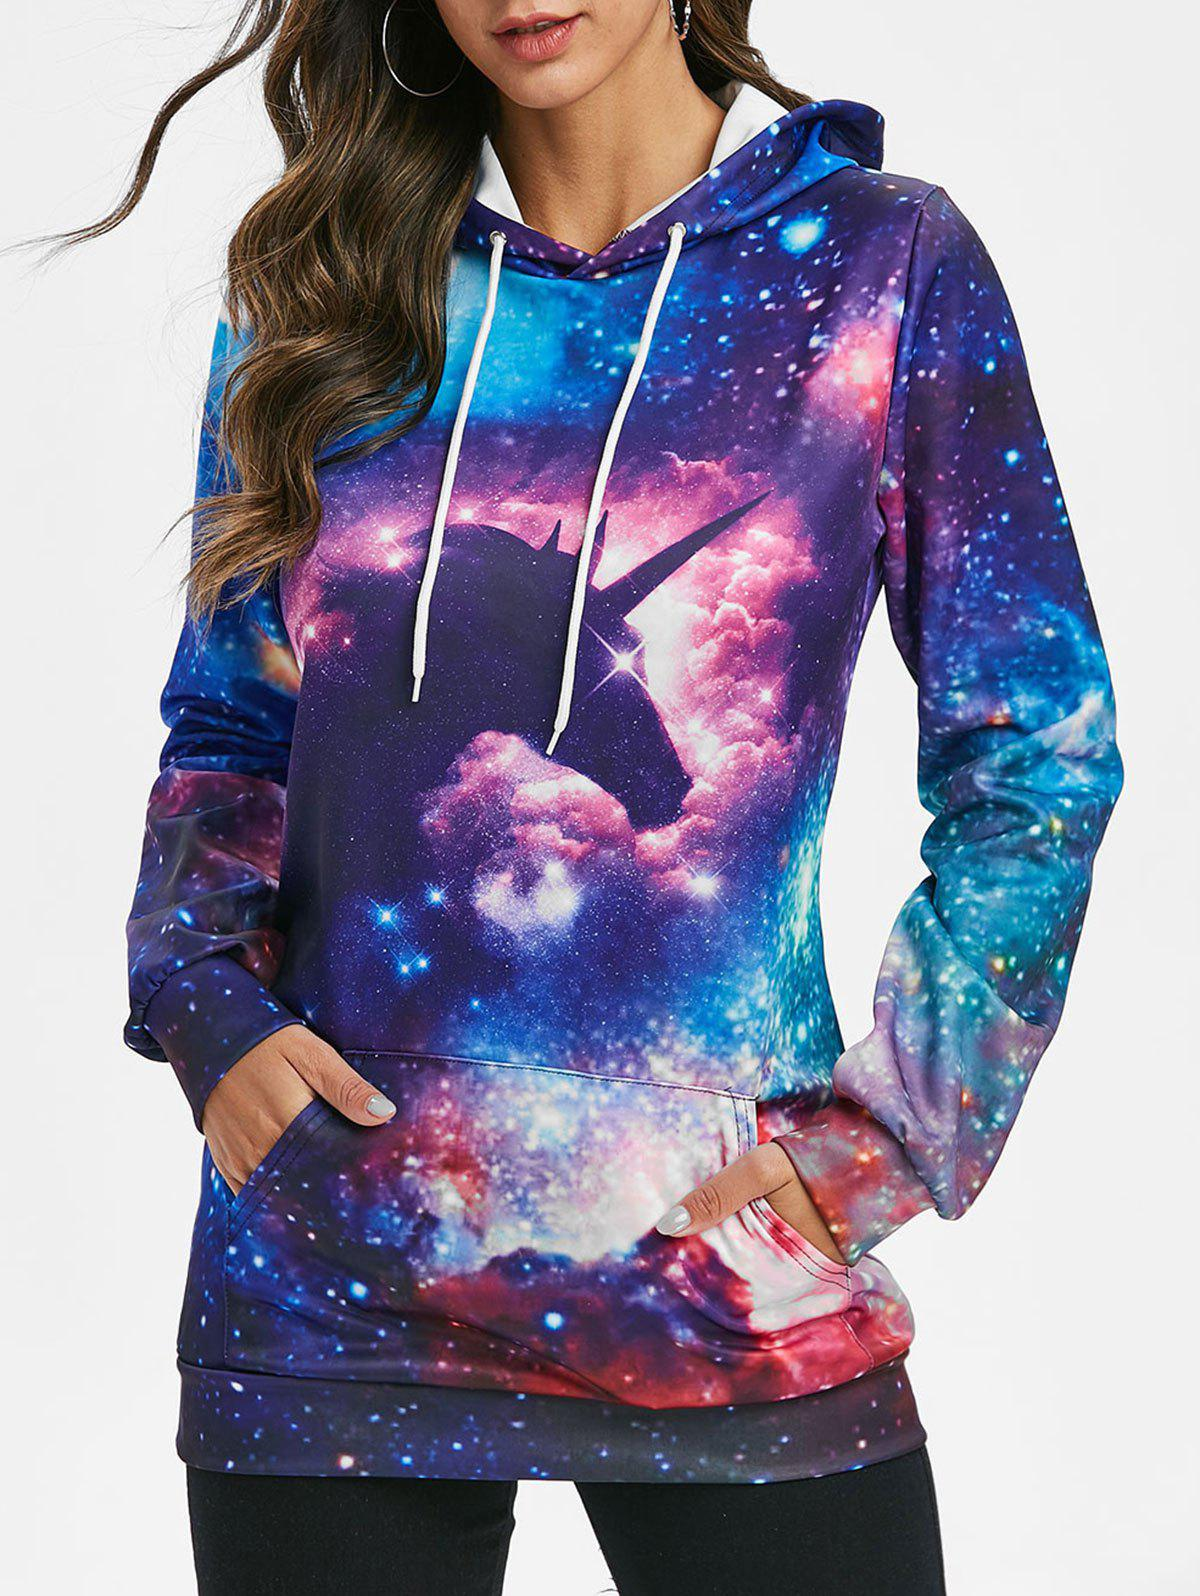 Unicorn Galaxy Kangaroo Pocket Longline Hoodie - multicolor 3XL